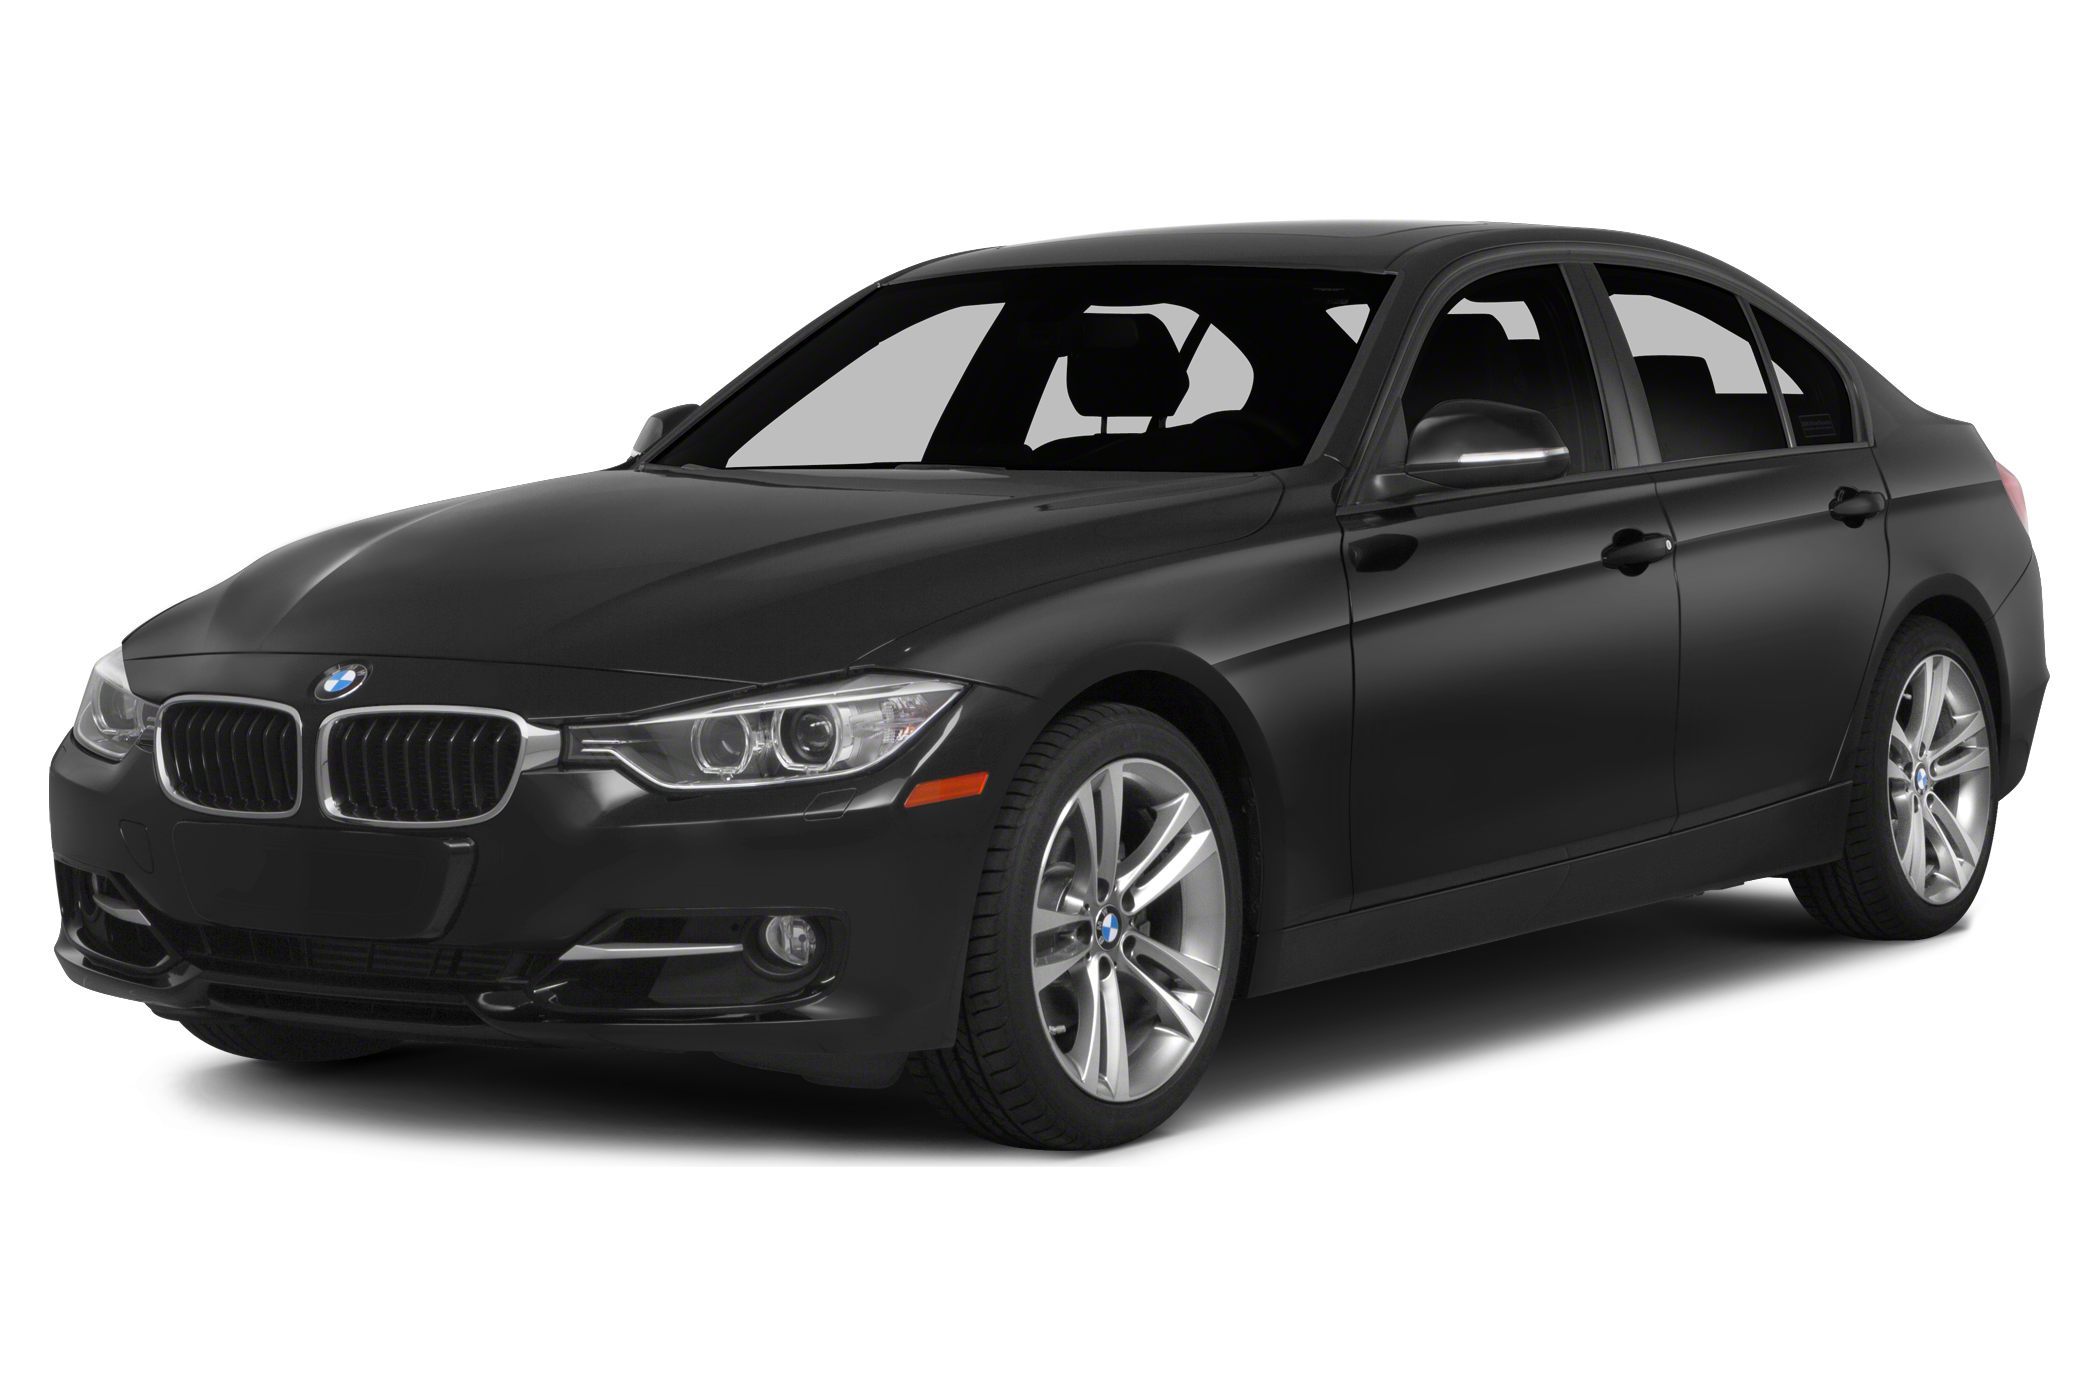 2014 BMW 320 I XDrive Sedan for sale in Norwood for $41,395 with 6 miles